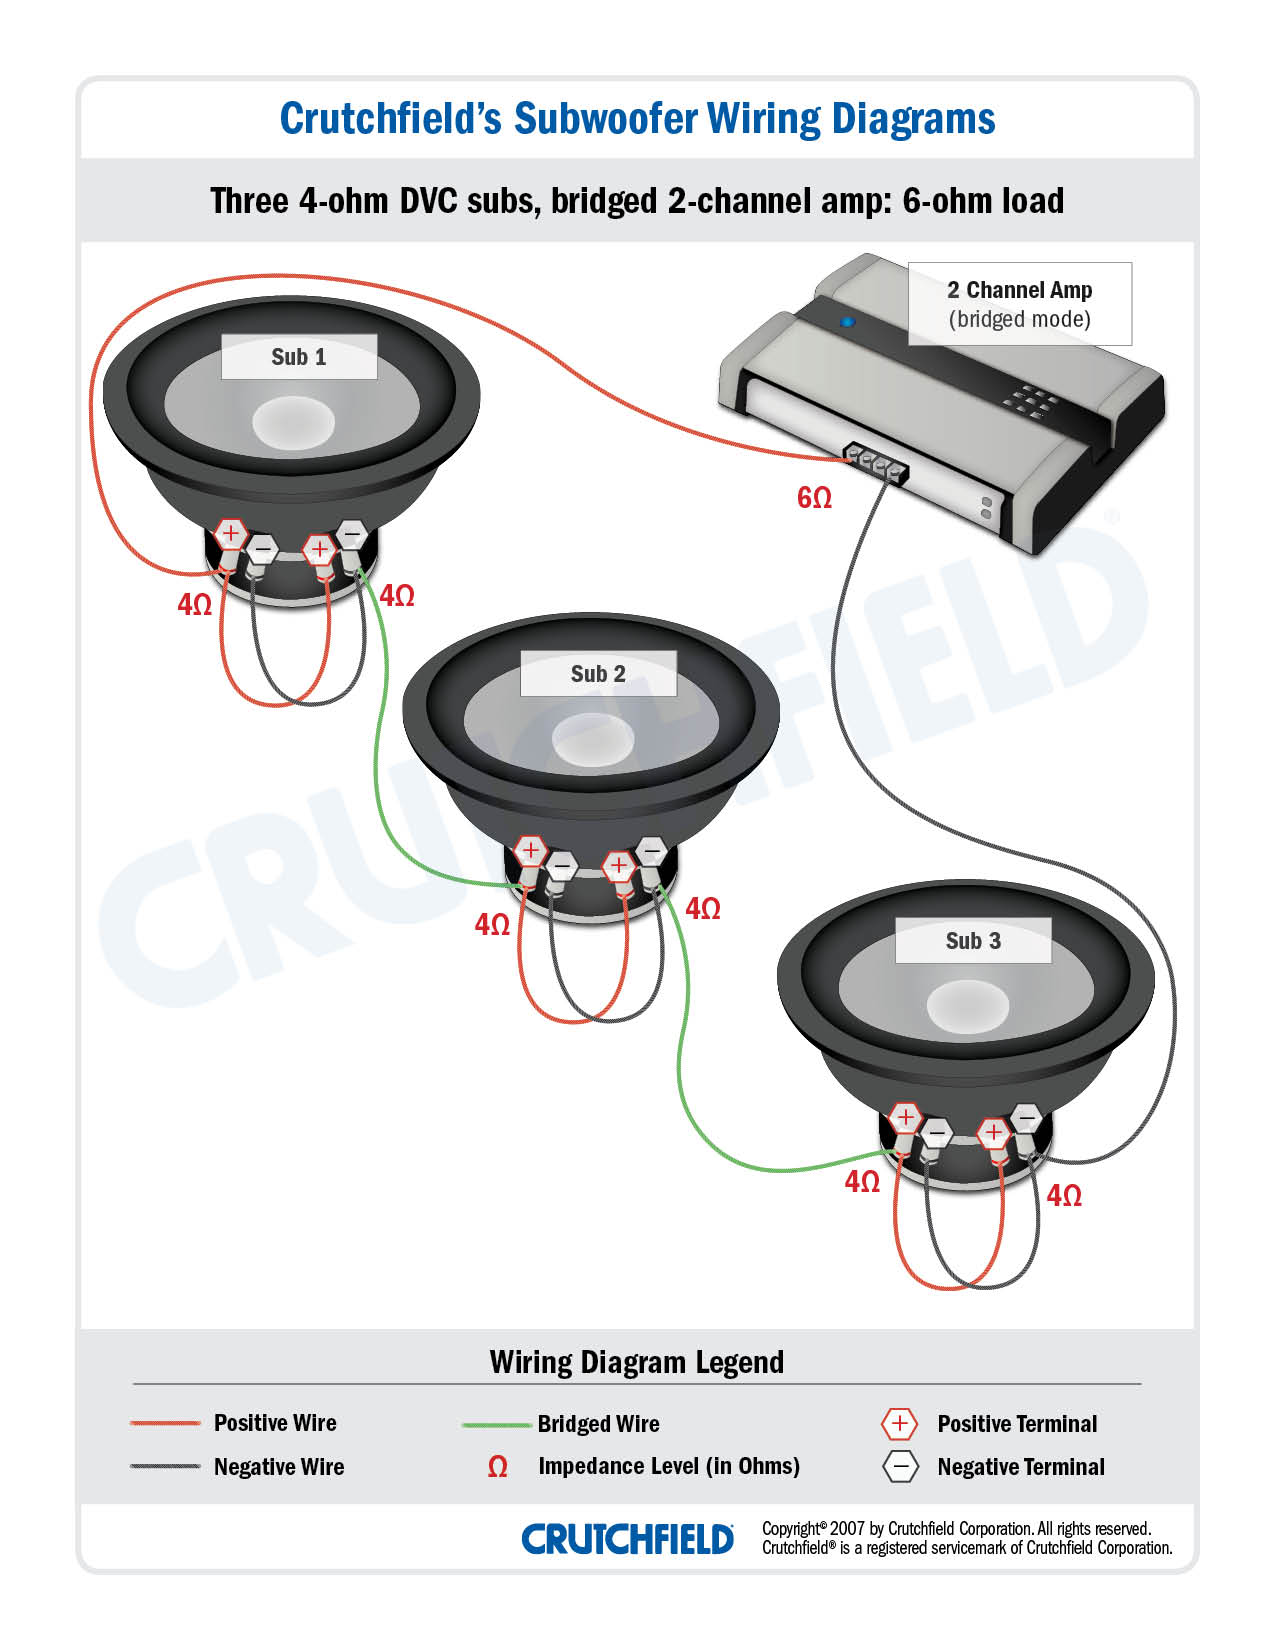 3 DVC 4 ohm 2 ch how to match subwoofers and amplifiers kicker l7 wiring diagram at bayanpartner.co